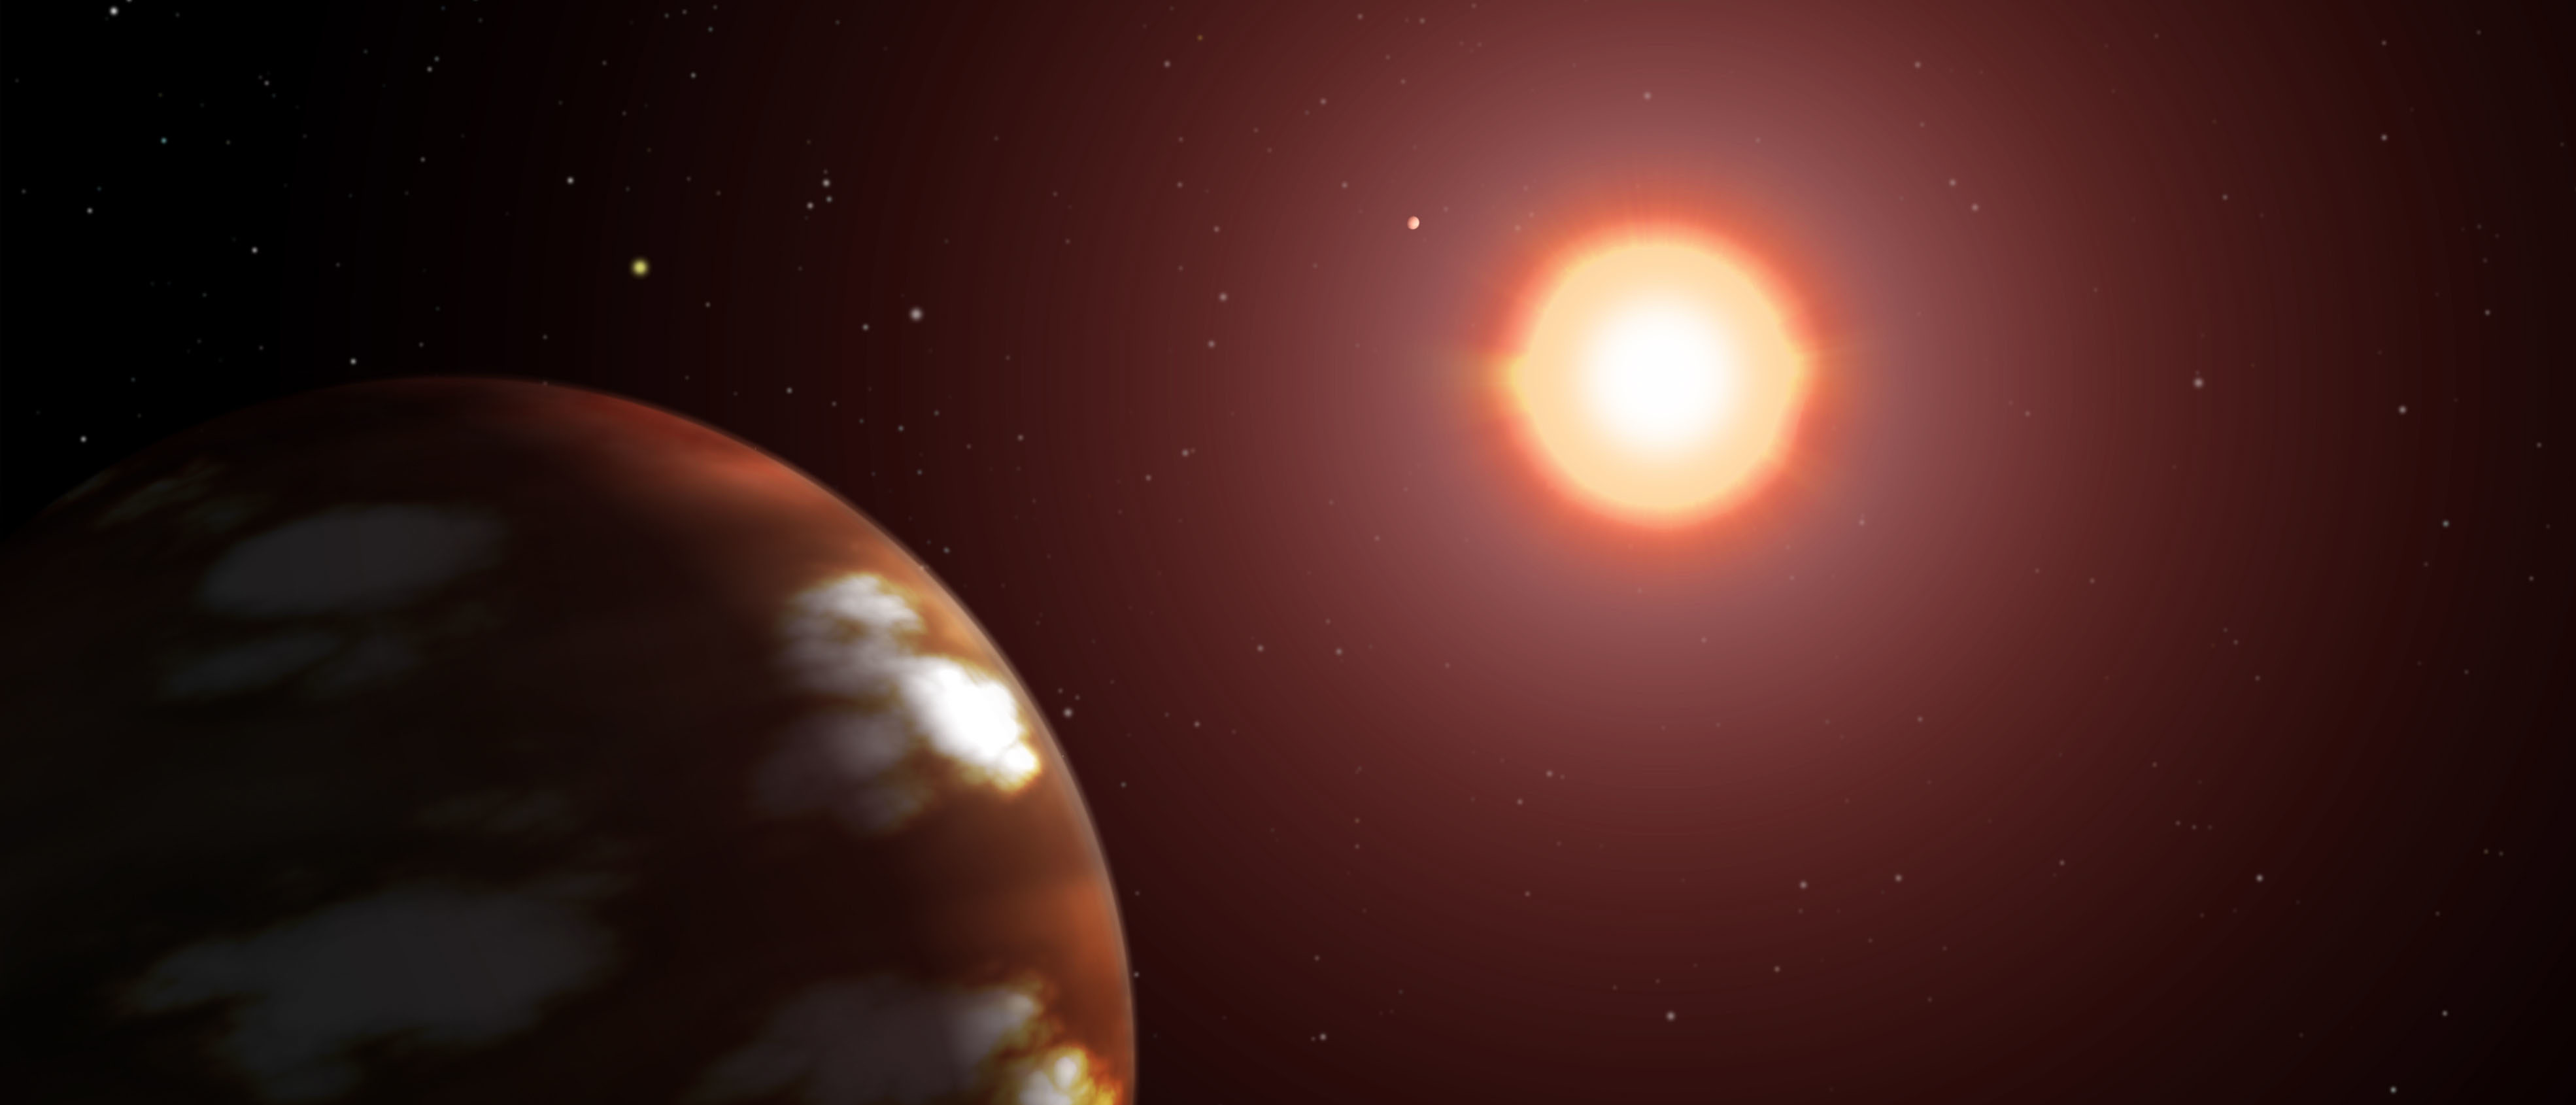 Illustration of a Neptune-sized plaent orbiting the M dwarf star Gliese 436 (Illustration by NASA via Getty Images)